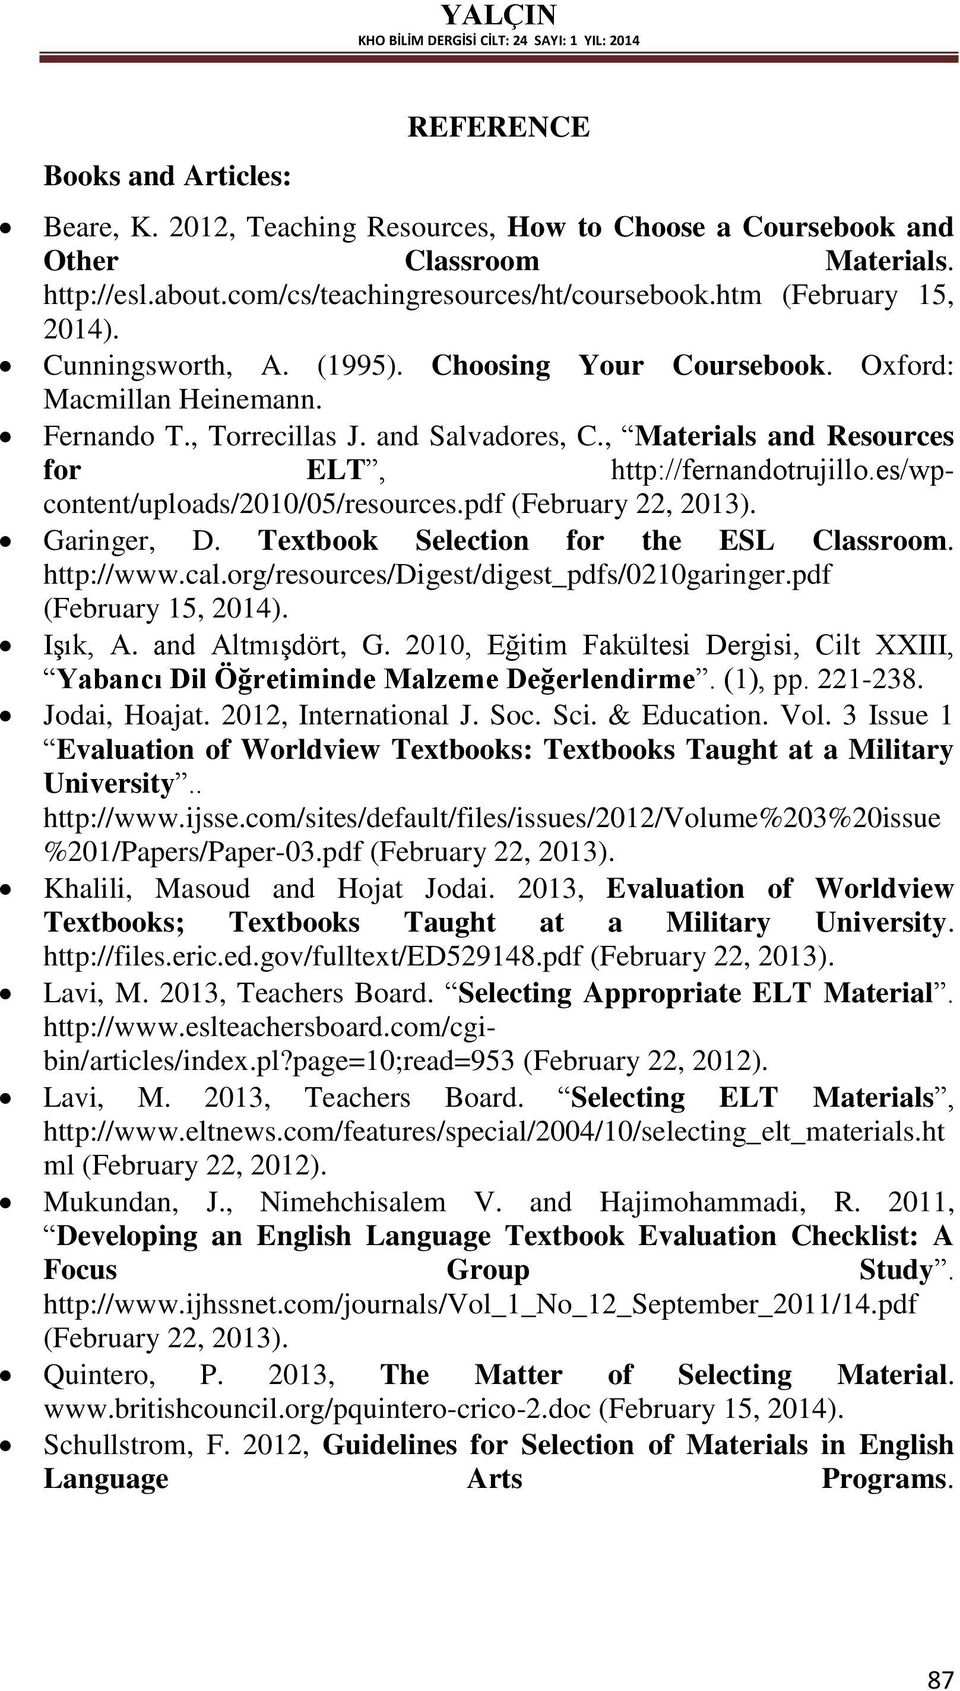 , Materials and Resources for ELT, http://fernandotrujillo.es/wpcontent/uploads/2010/05/resources.pdf (February 22, 2013). Garinger, D. Textbook Selection for the ESL Classroom. http://www.cal.